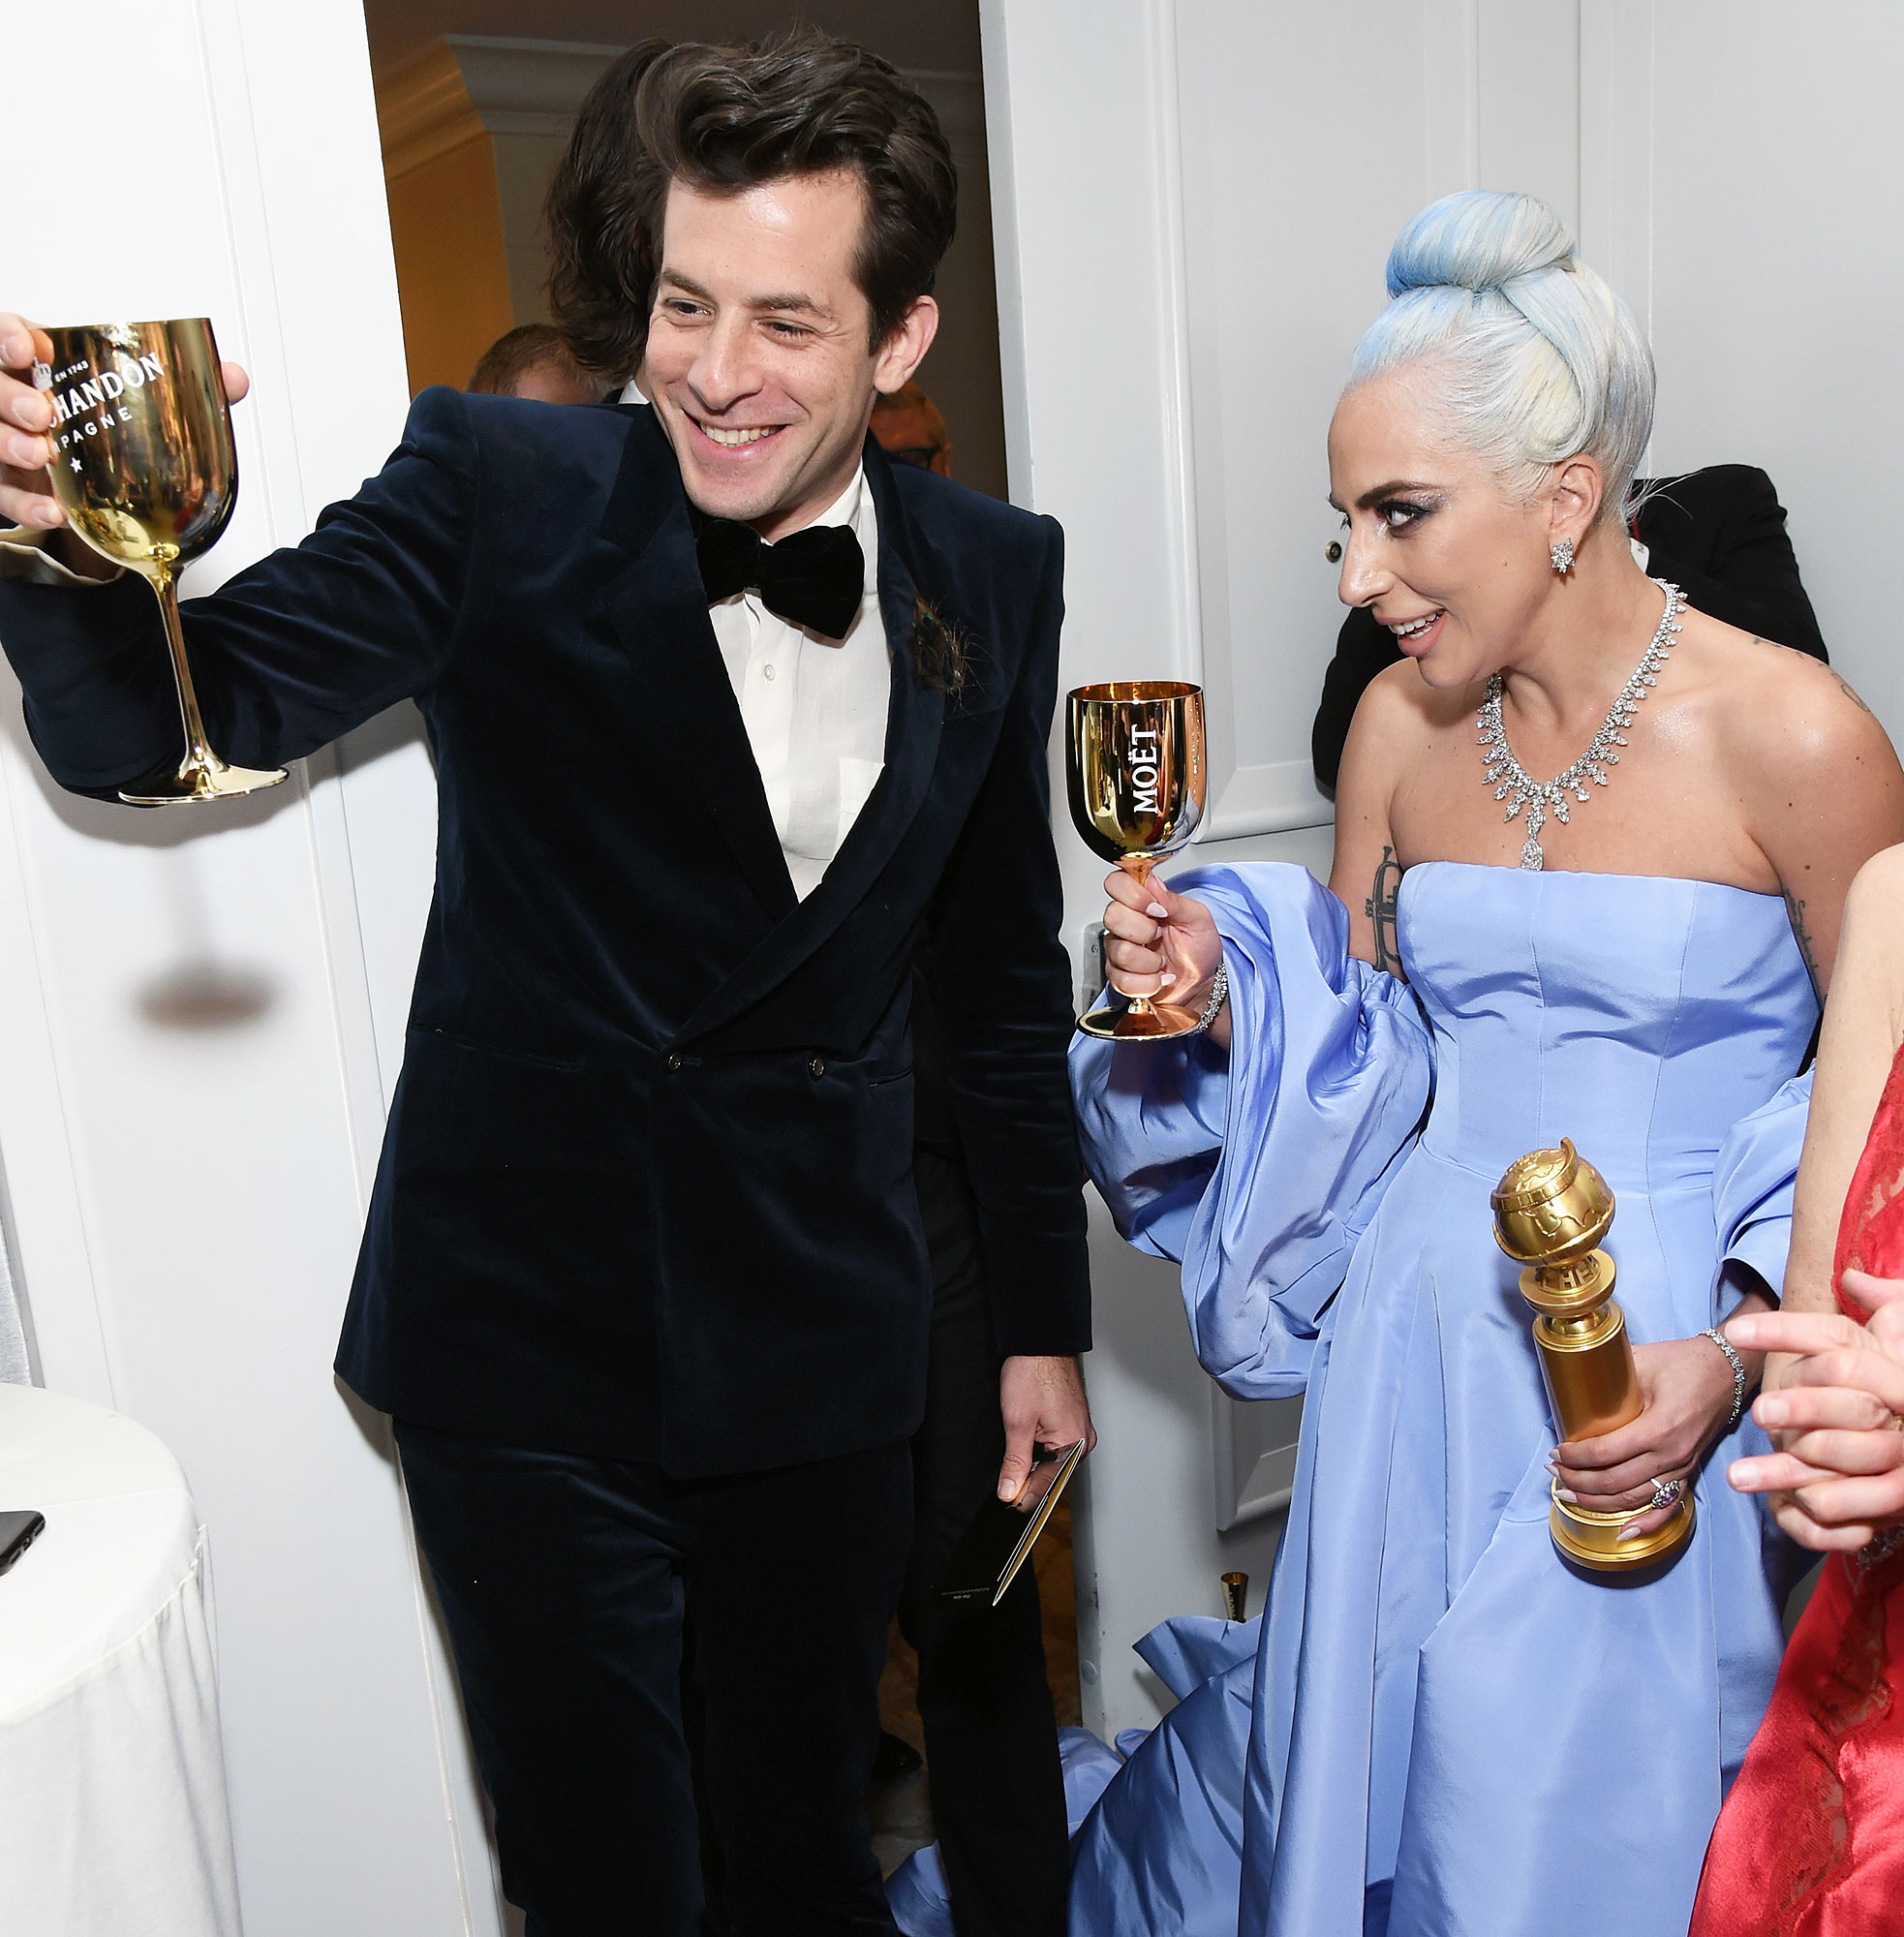 """Inside Golden Globes 2019 Lady Gaga Mark Ronson - Mark Ronson and Lady Gaga celebrated their Best Original Song win for """"Shallow"""" from A Star Is Born with champagne."""